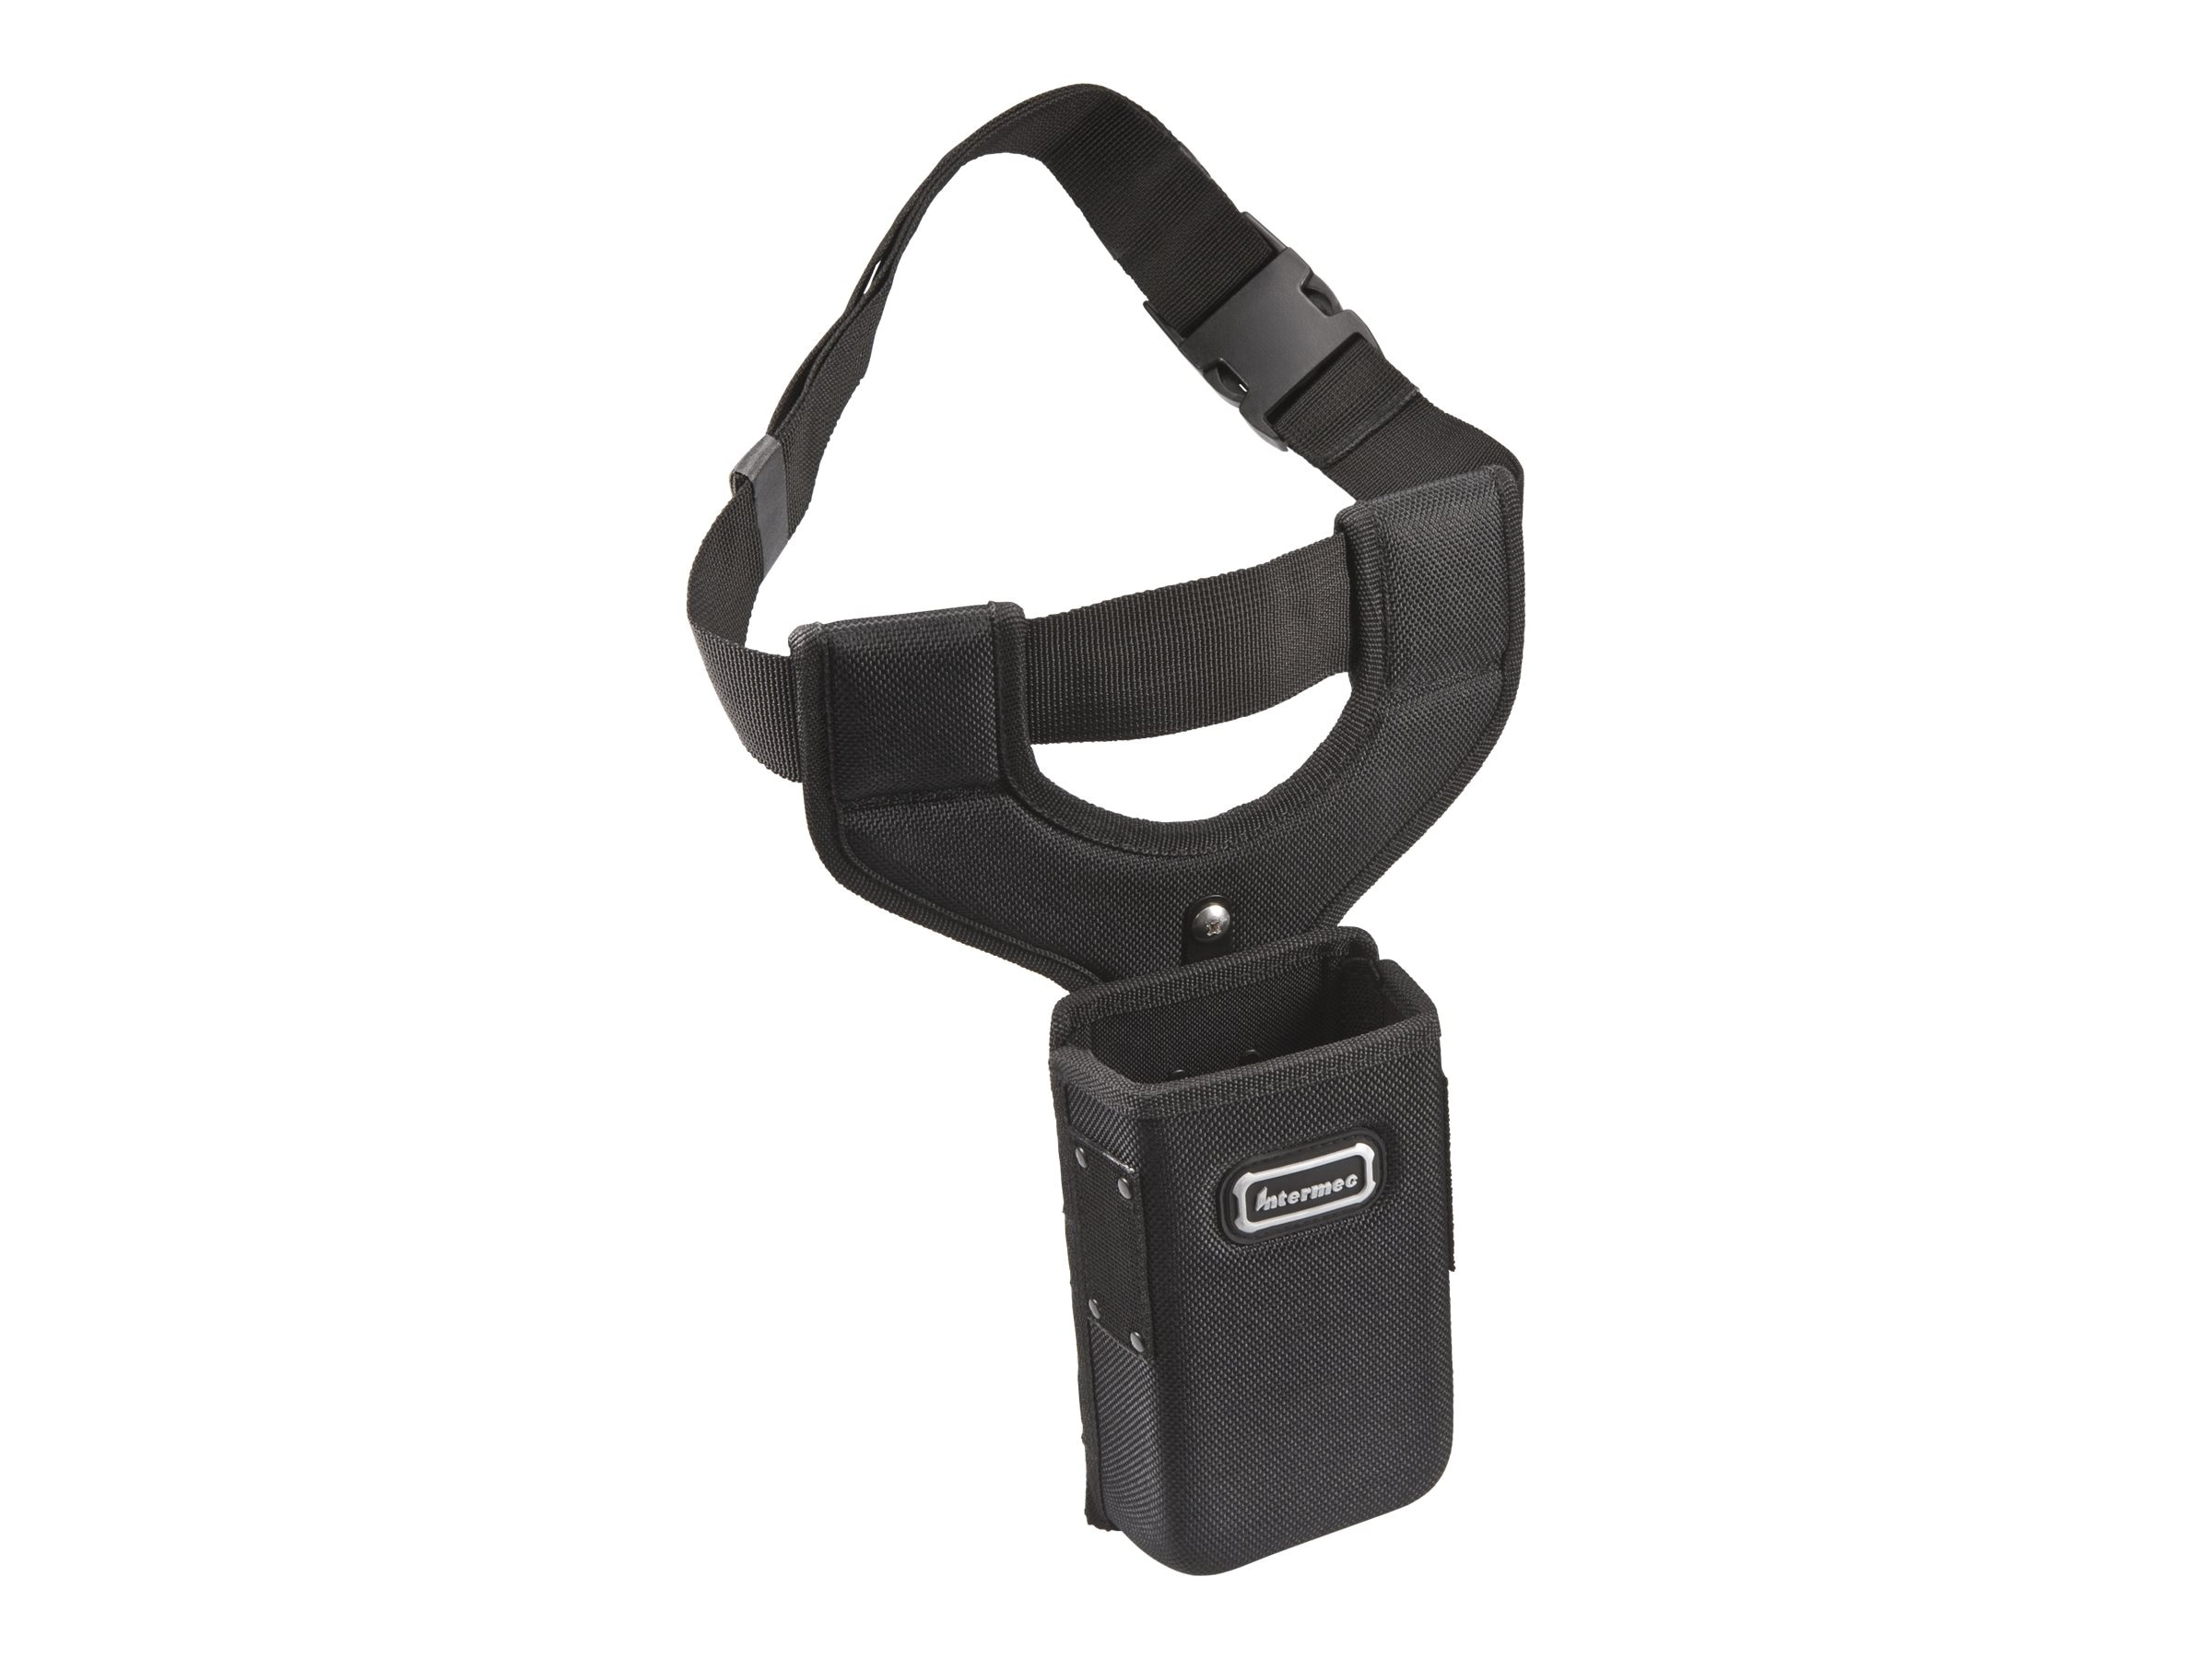 Intermec Holster CN70E without Scan Handle